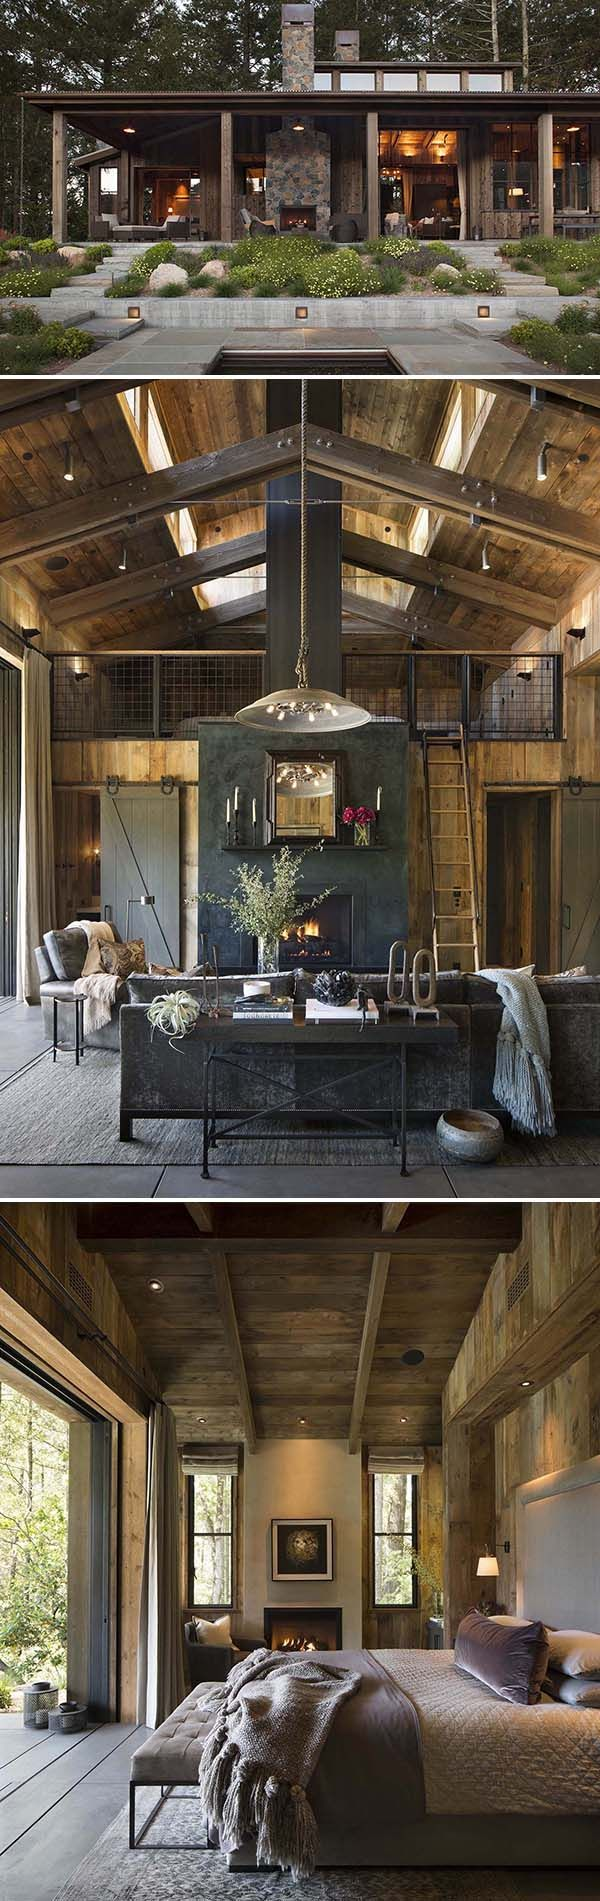 Cabin Design Ideas cabin design ideas inspiration mountain house architecture 29 Gorgeous Farmhouse Style Cabin By Wade Design Architects